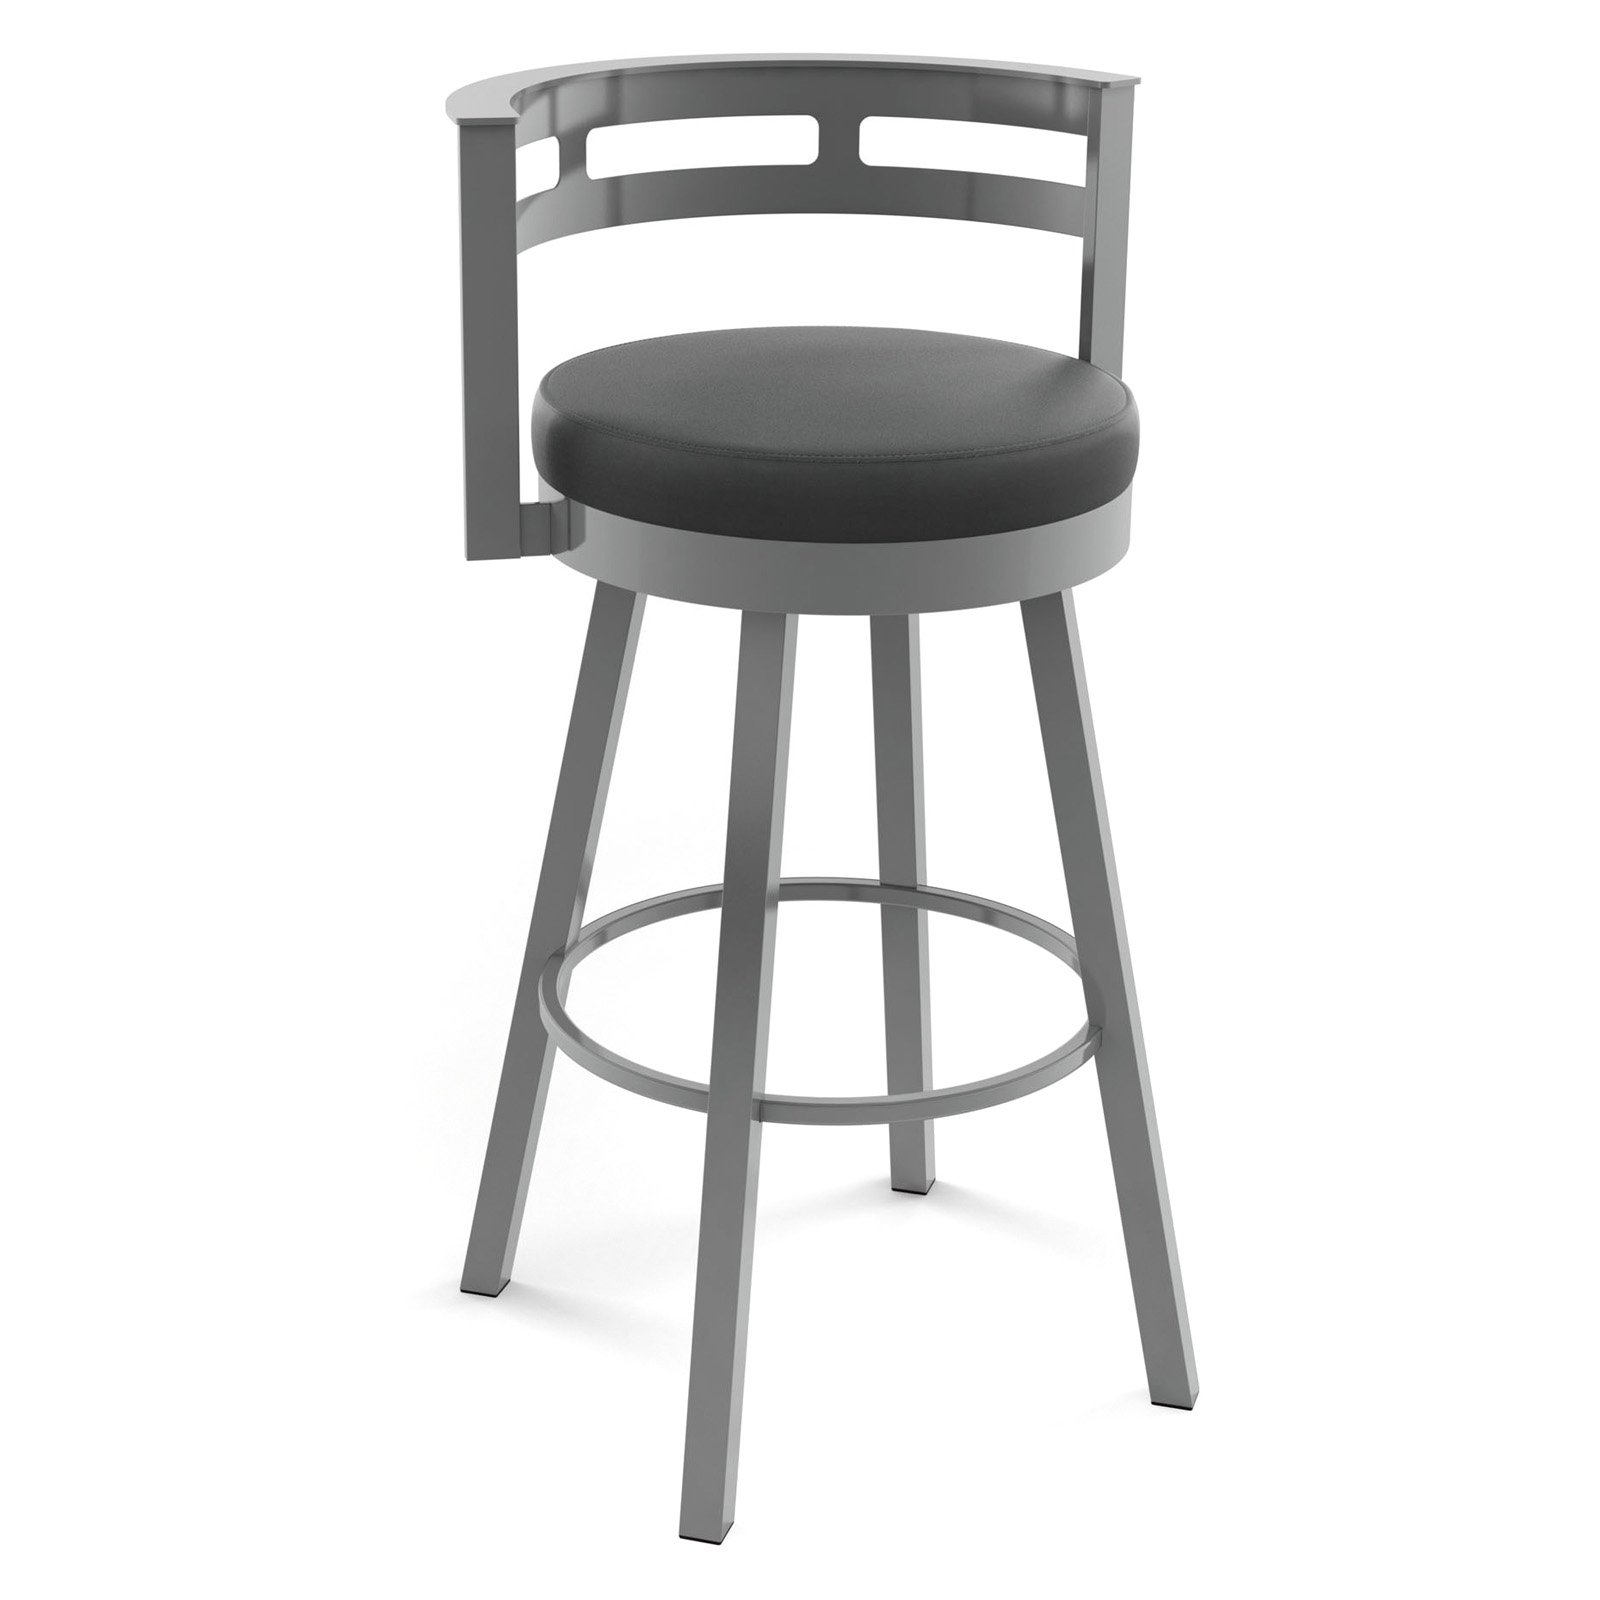 Amisco Render 31 in. Swivel Barstool